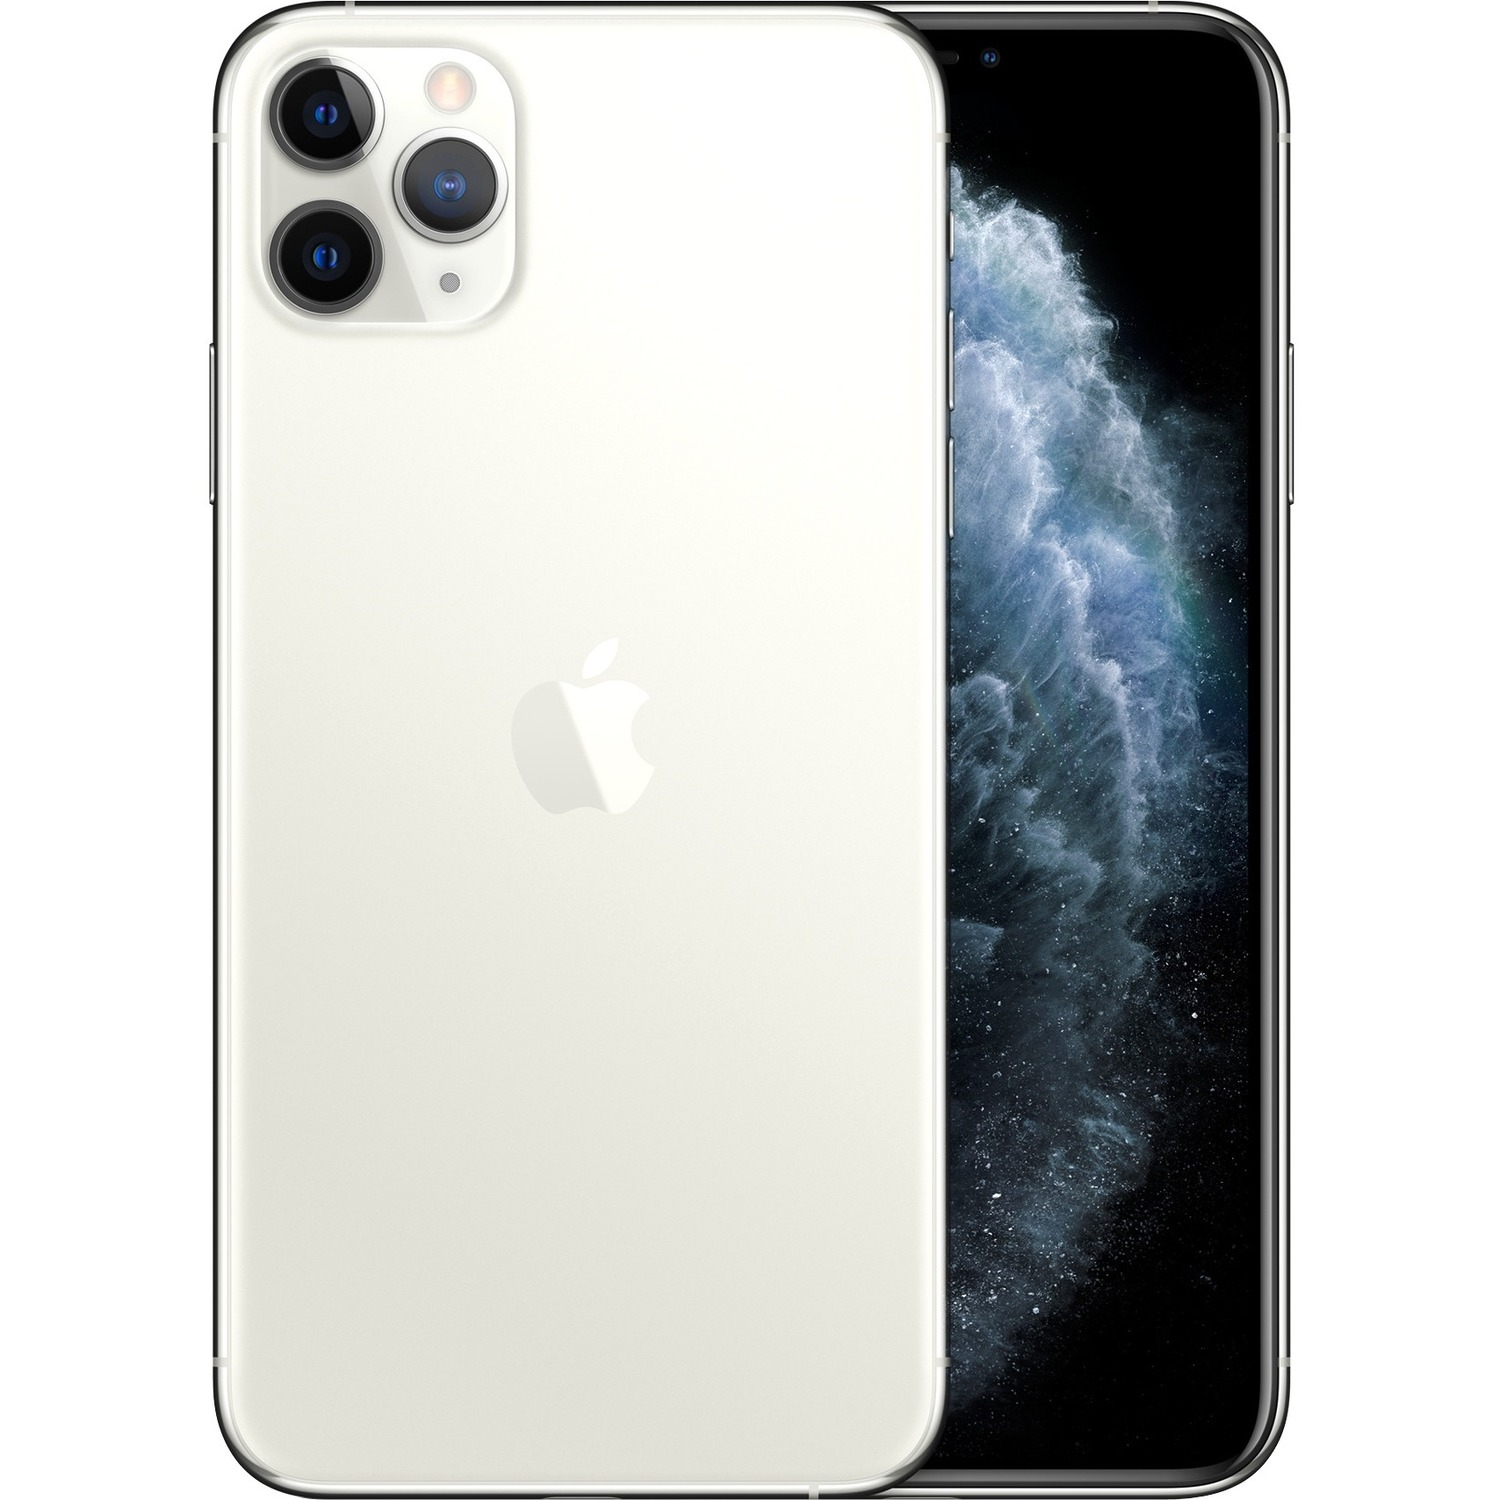 Apple iPhone 11 Pro Max A2218 64 GB Smartphone - 16.5 cm 6.5And#34; Full HD Plus - 4 GB RAM - iOS 13 - 4G - Silver